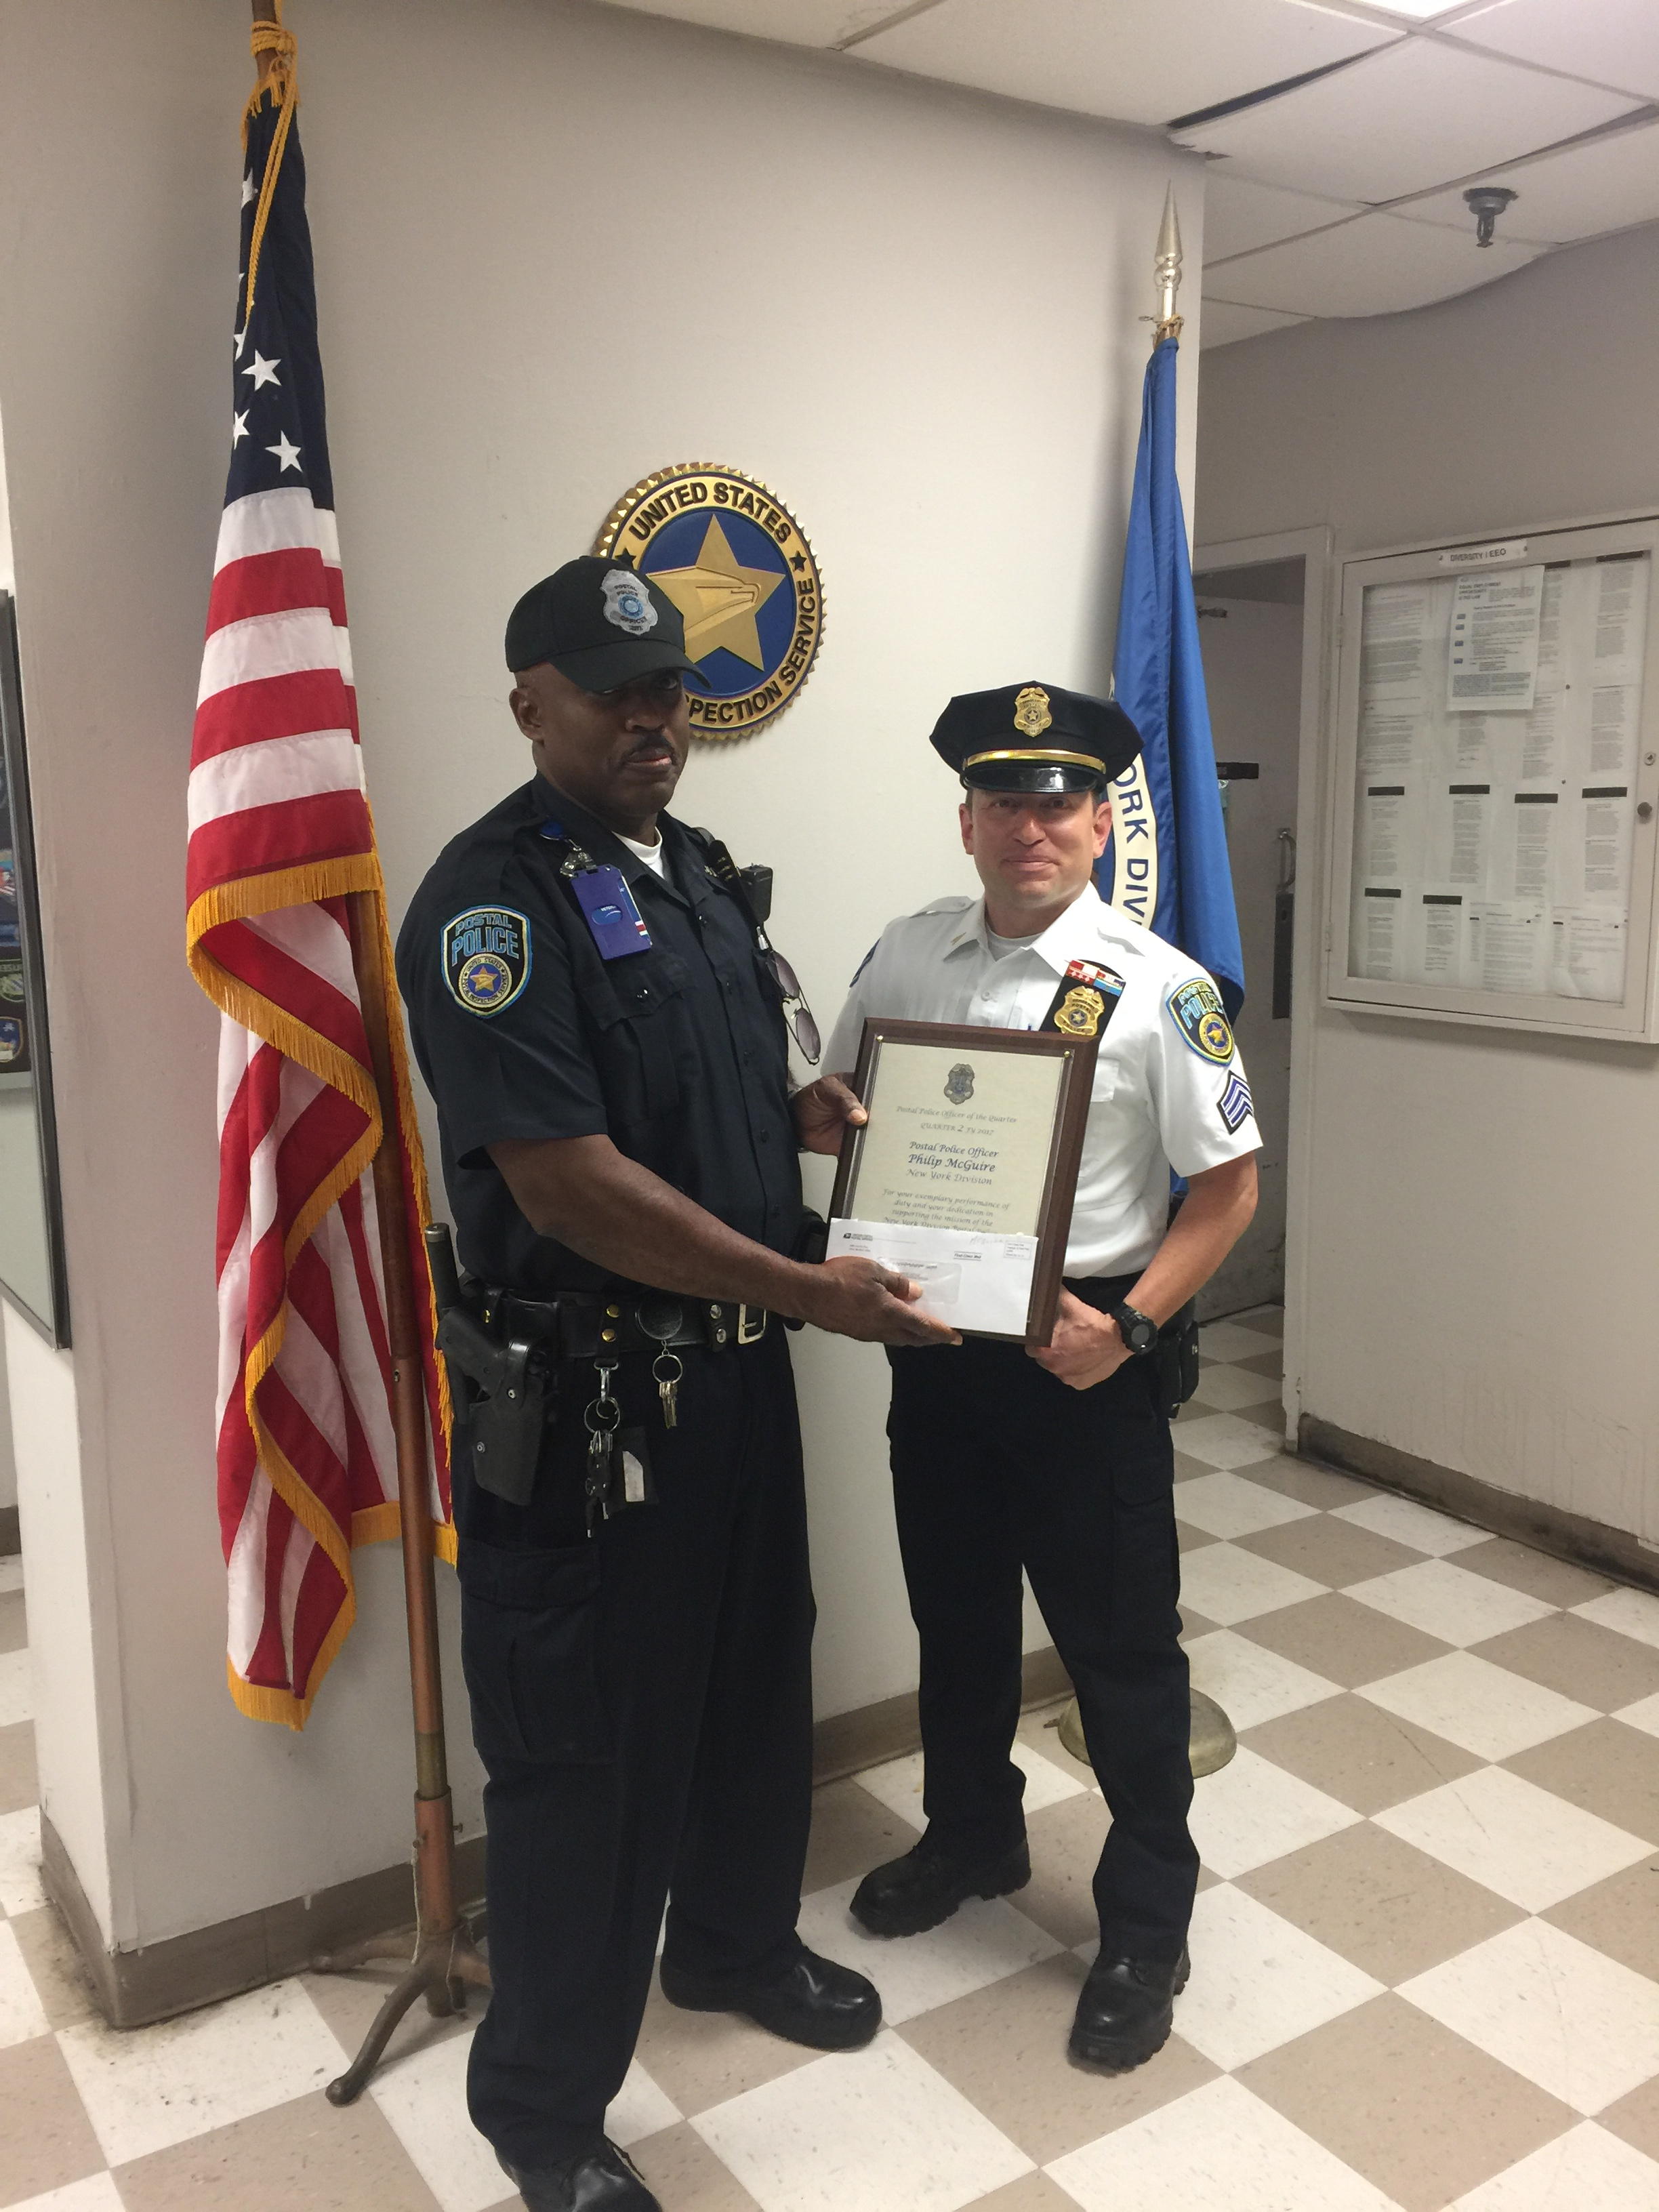 Officer McGuire receives award!